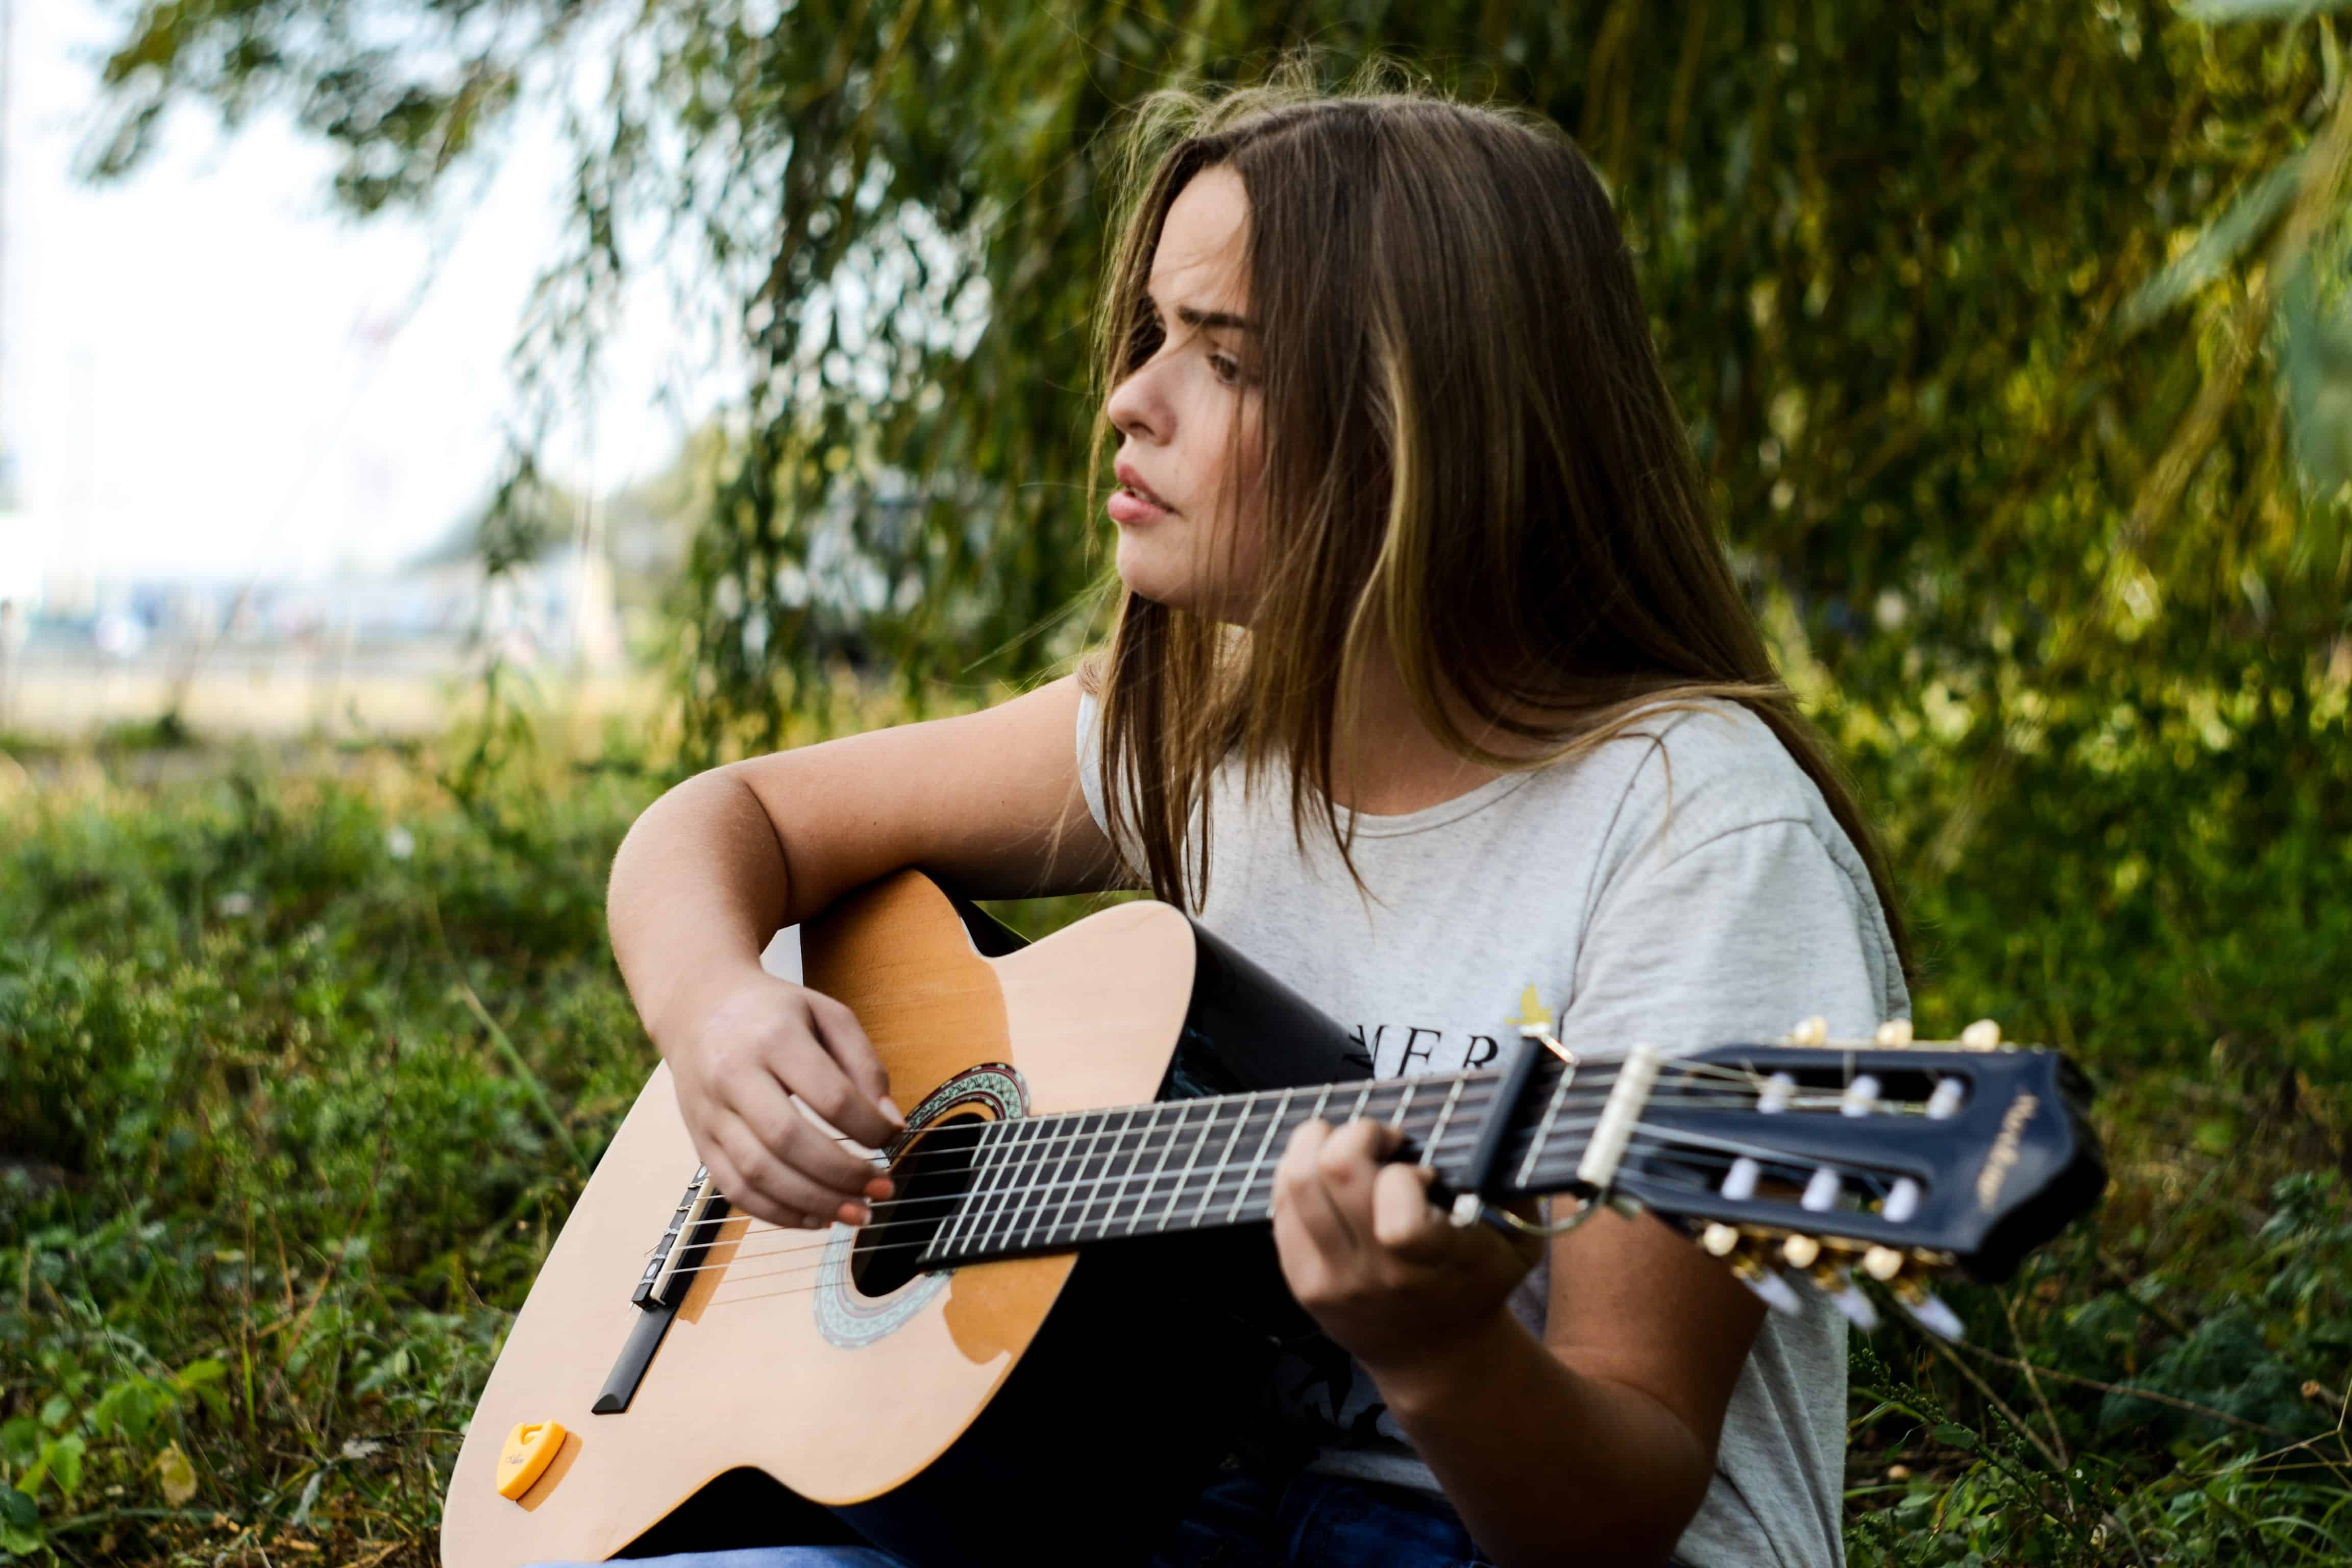 Girl playing guitar and challenge herself to learn to play